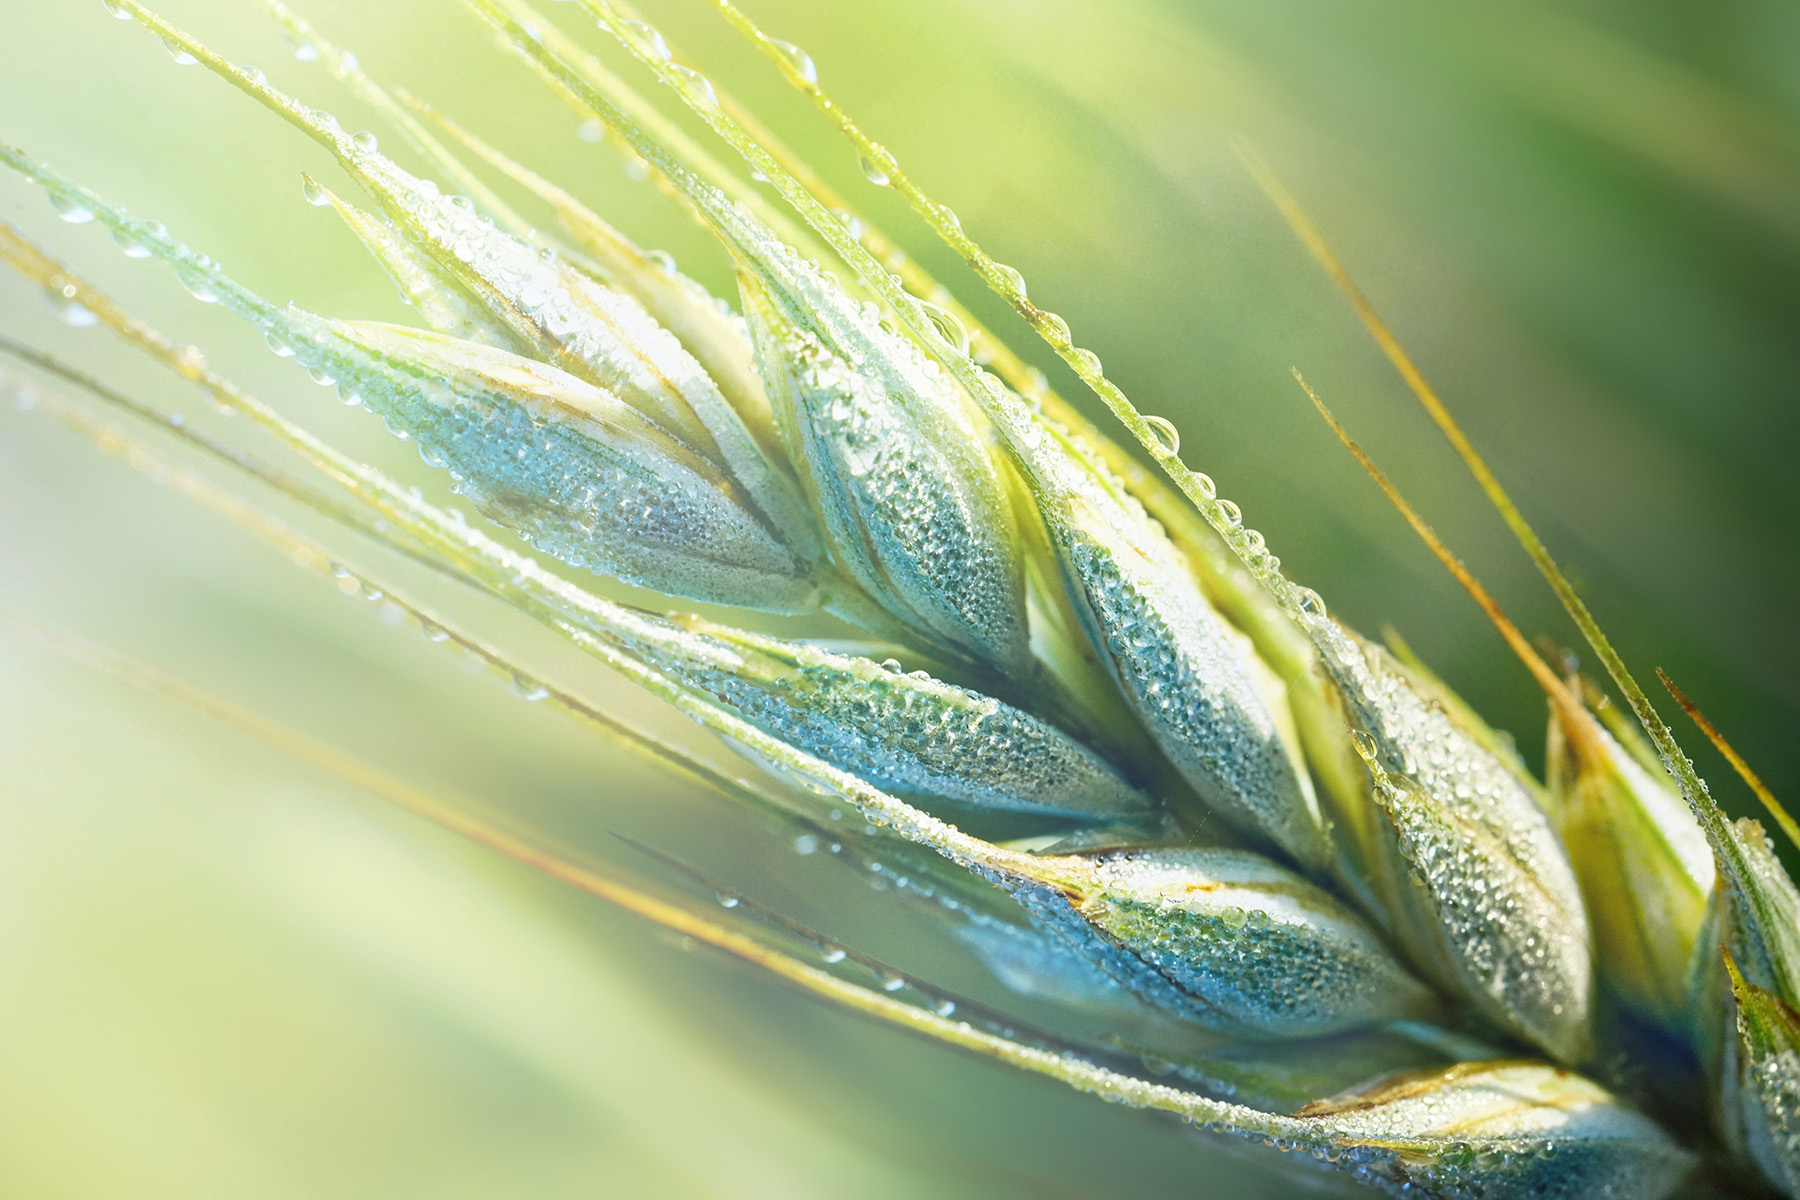 Beyond wheat: expanding genetic resources to meet global food demand